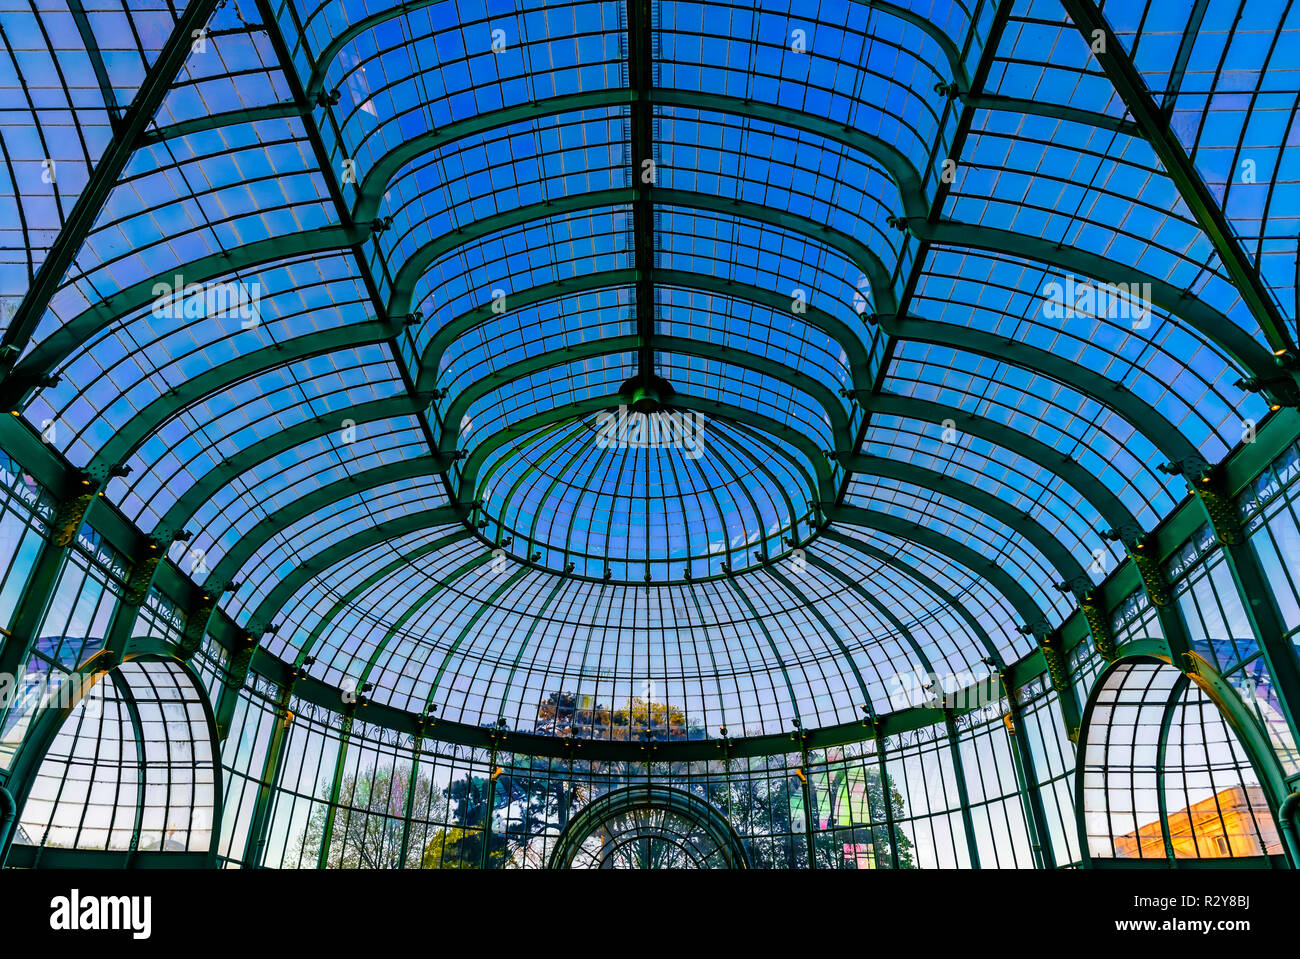 View of the interior of the Royal Glasshouses in Brussels, Belgium - Stock Image